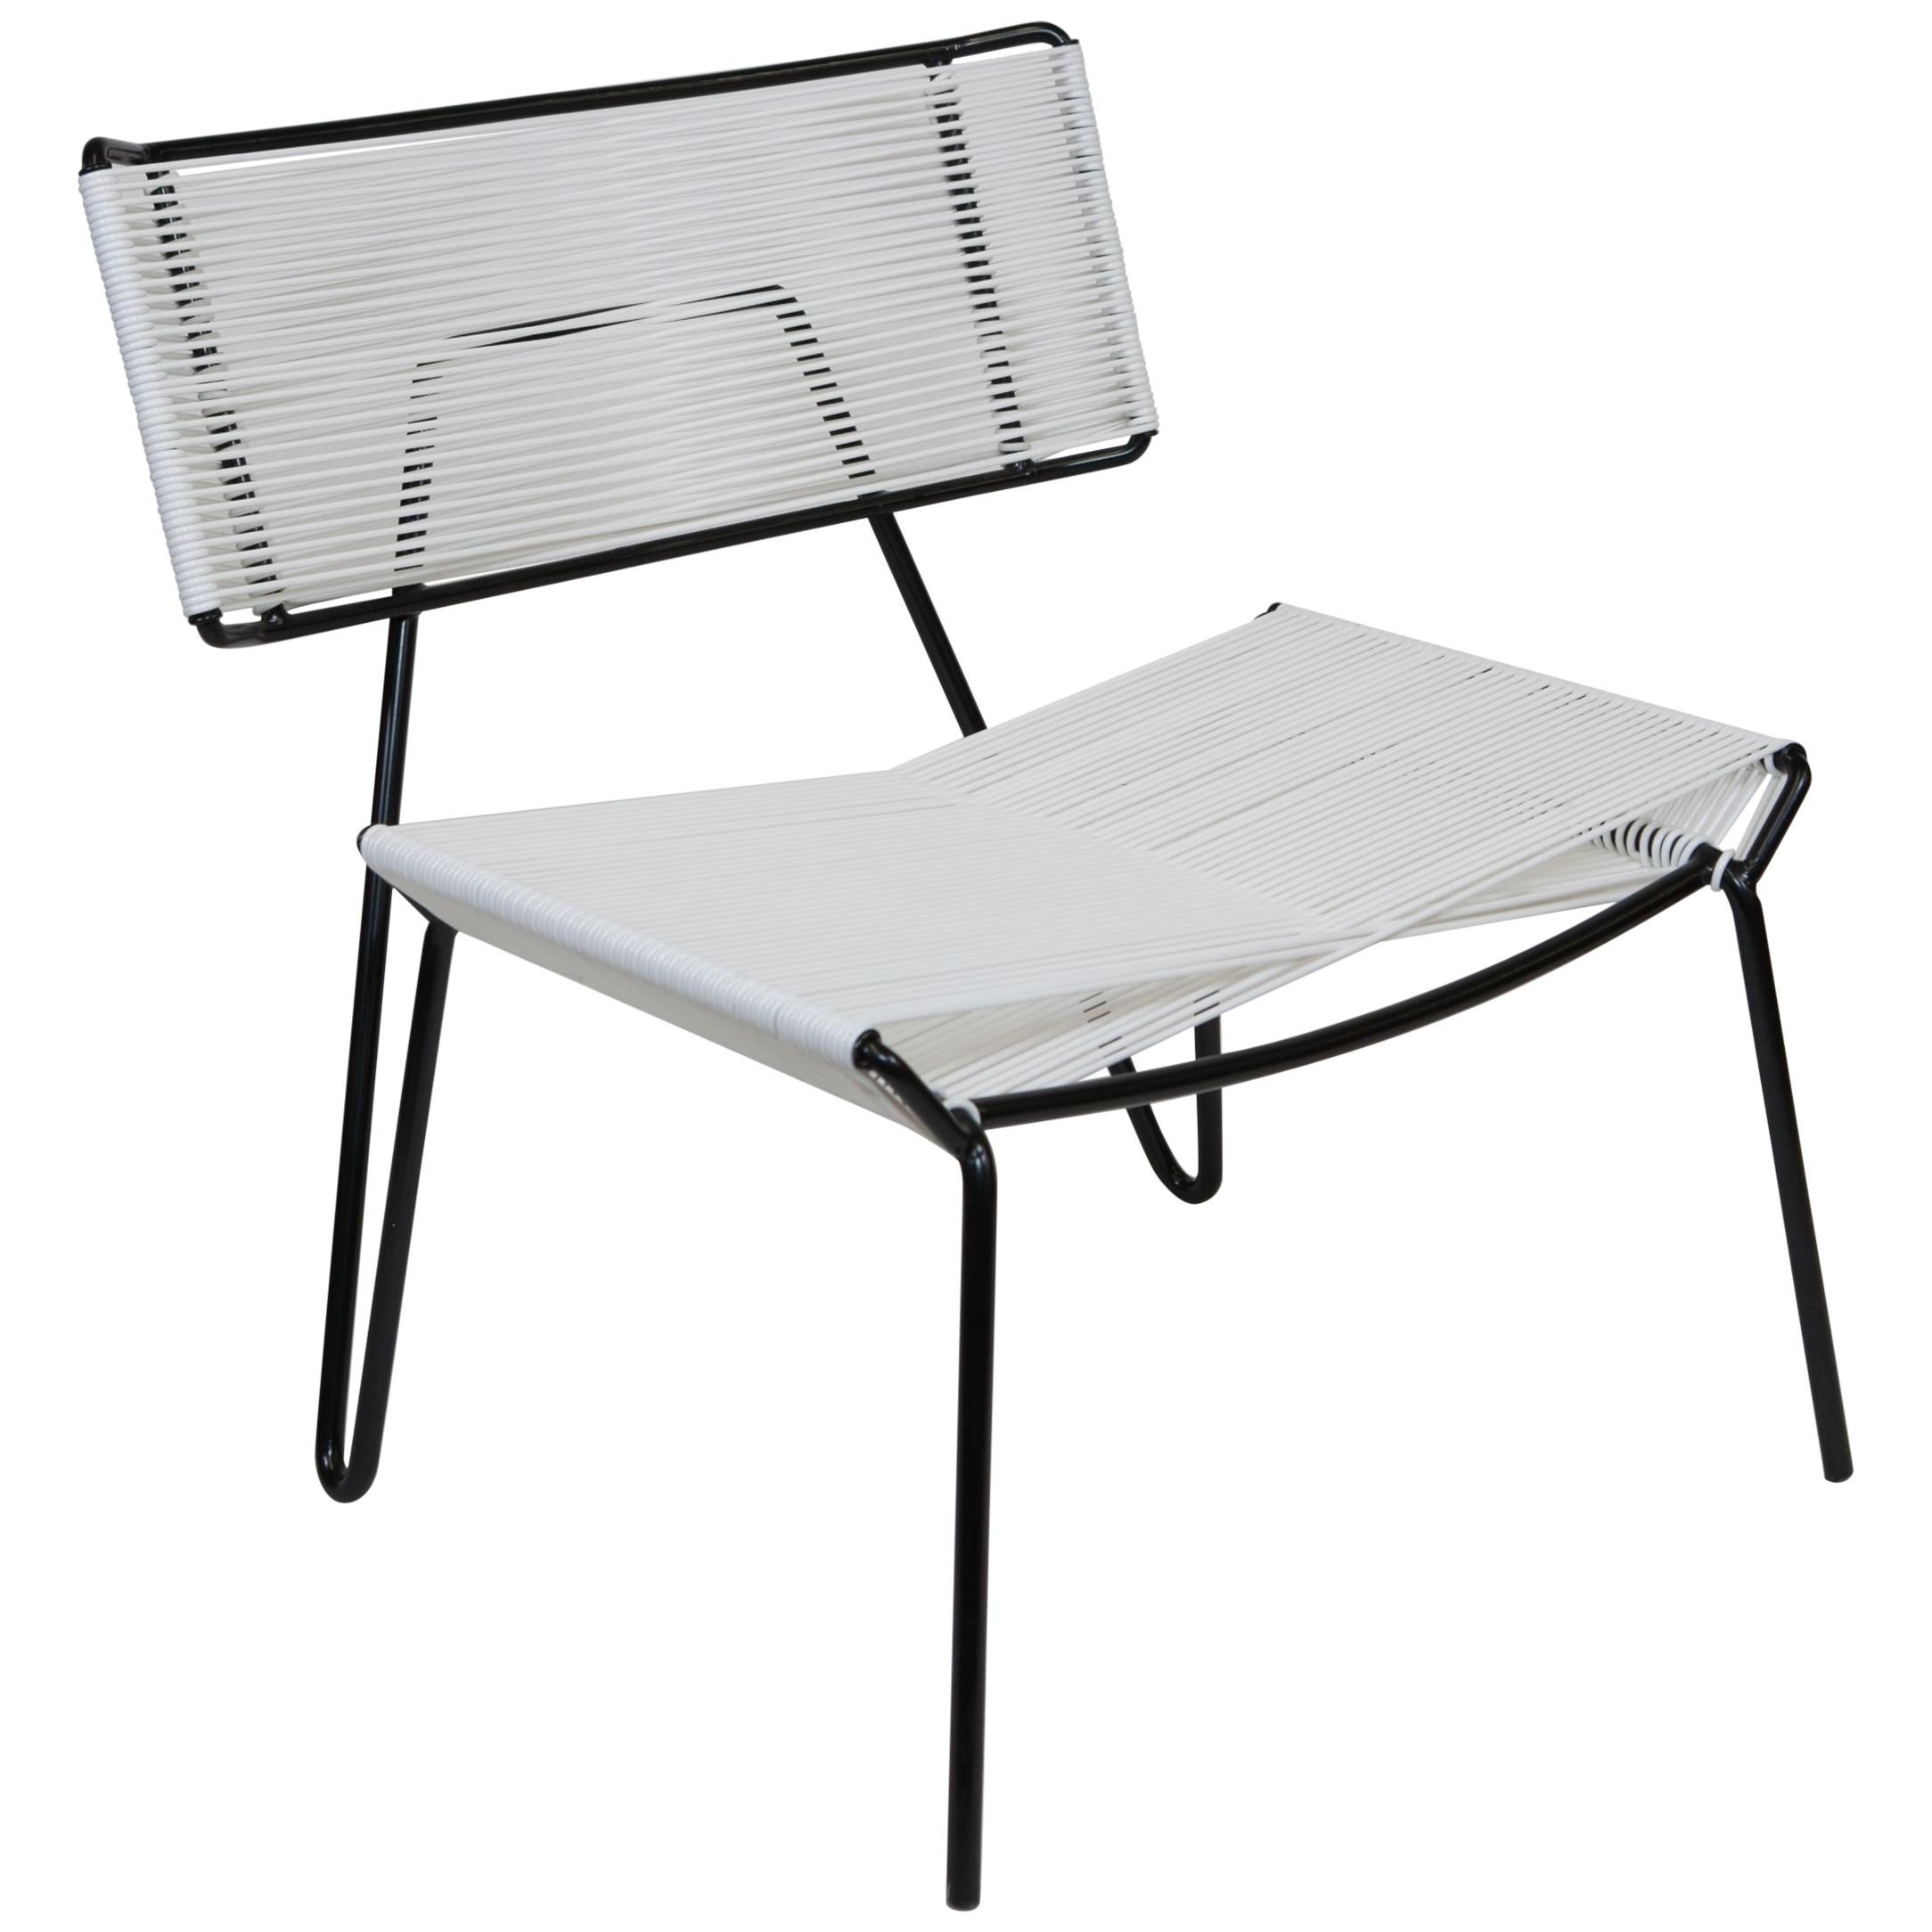 Handmade Midcentury Style Outdoor Lounge Chair, Black With White PVC, In  Stock For Sale